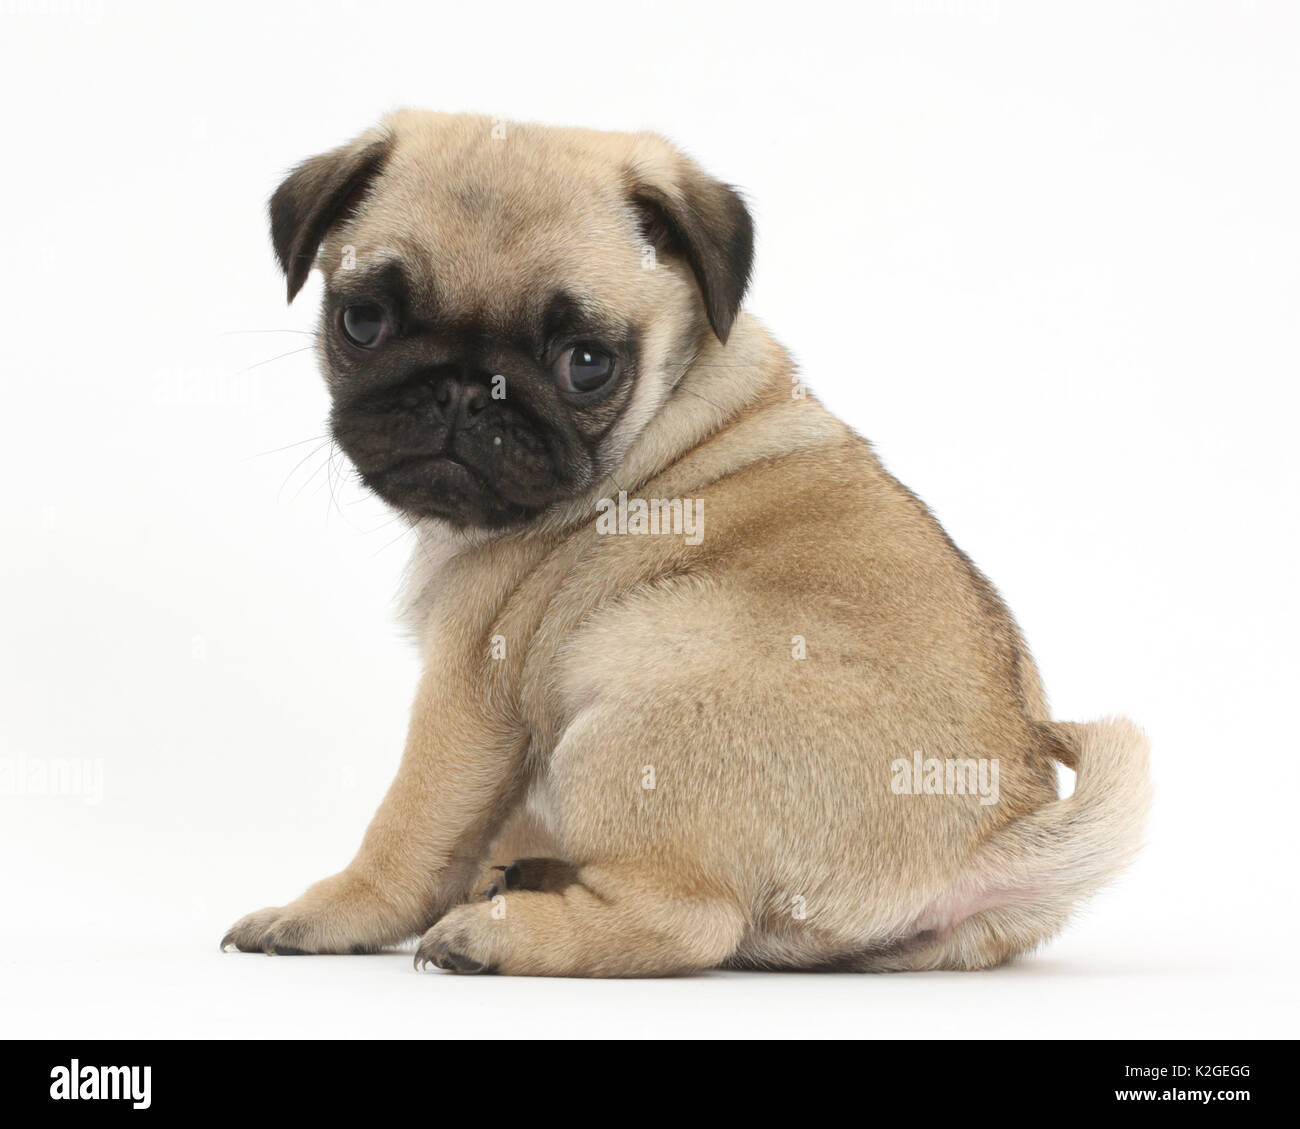 Pug puppy looking over shoulder. - Stock Image